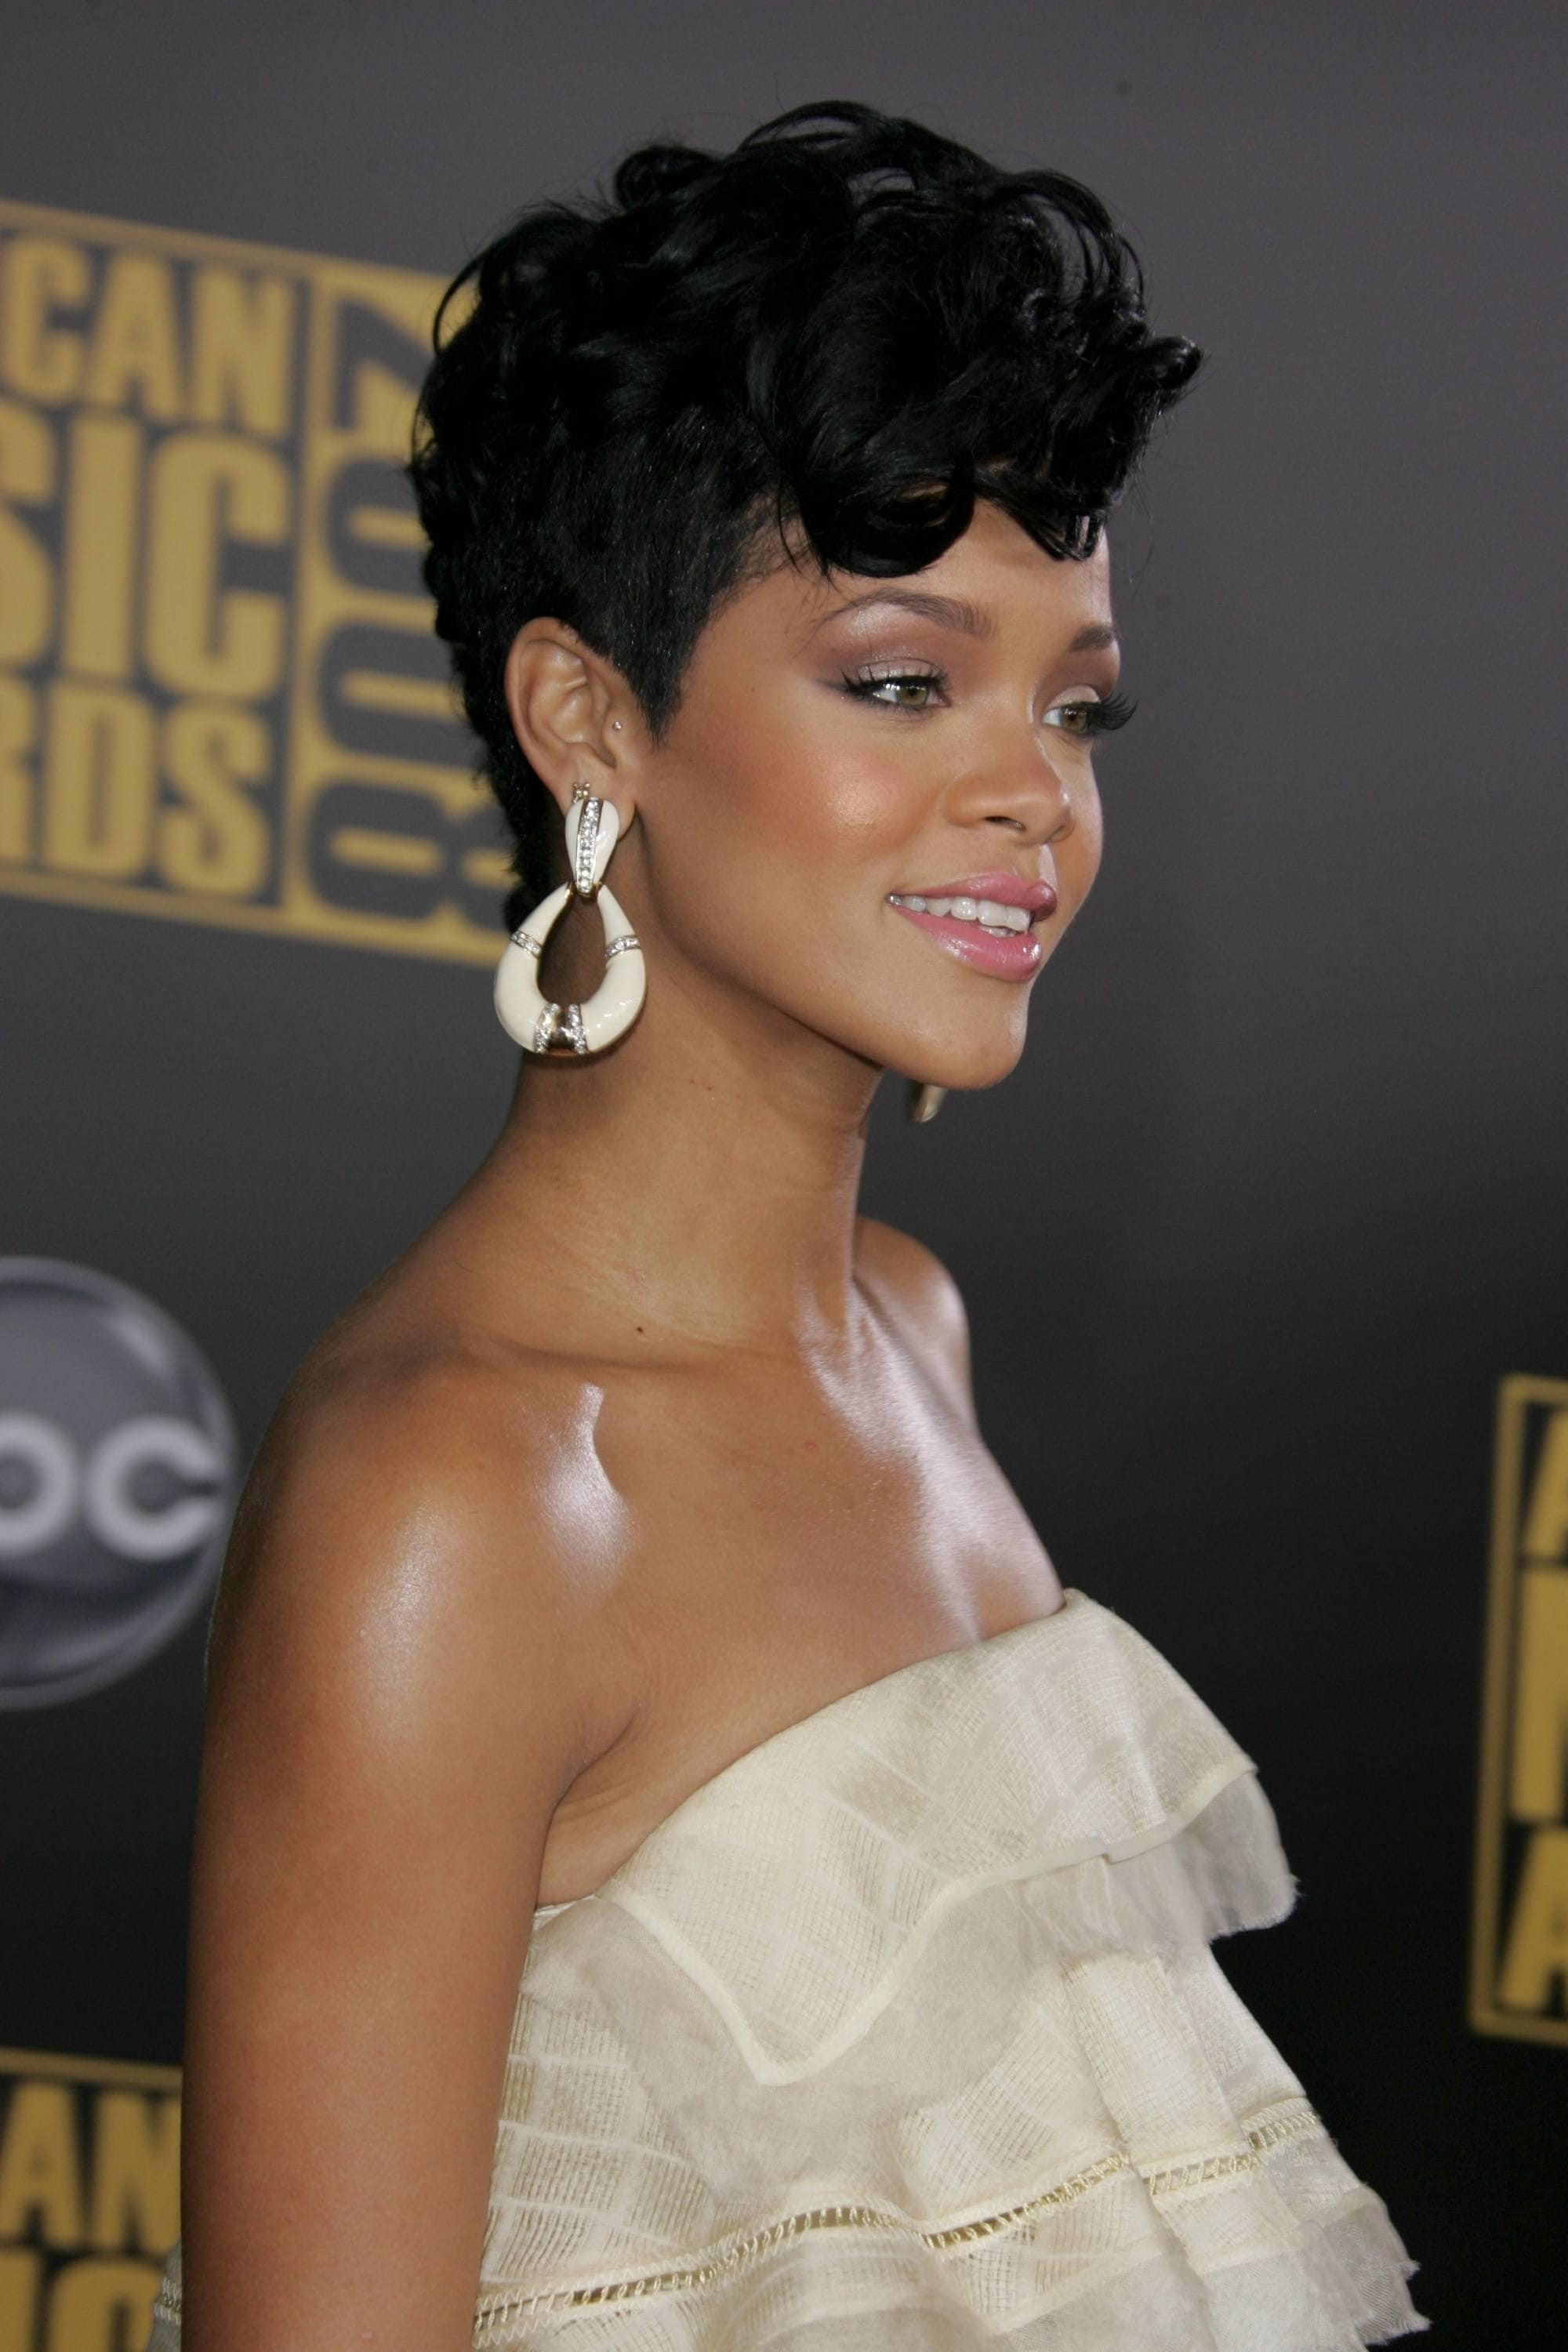 rihanna at the 2008 american music awards with a short curly mohawk hairstyle